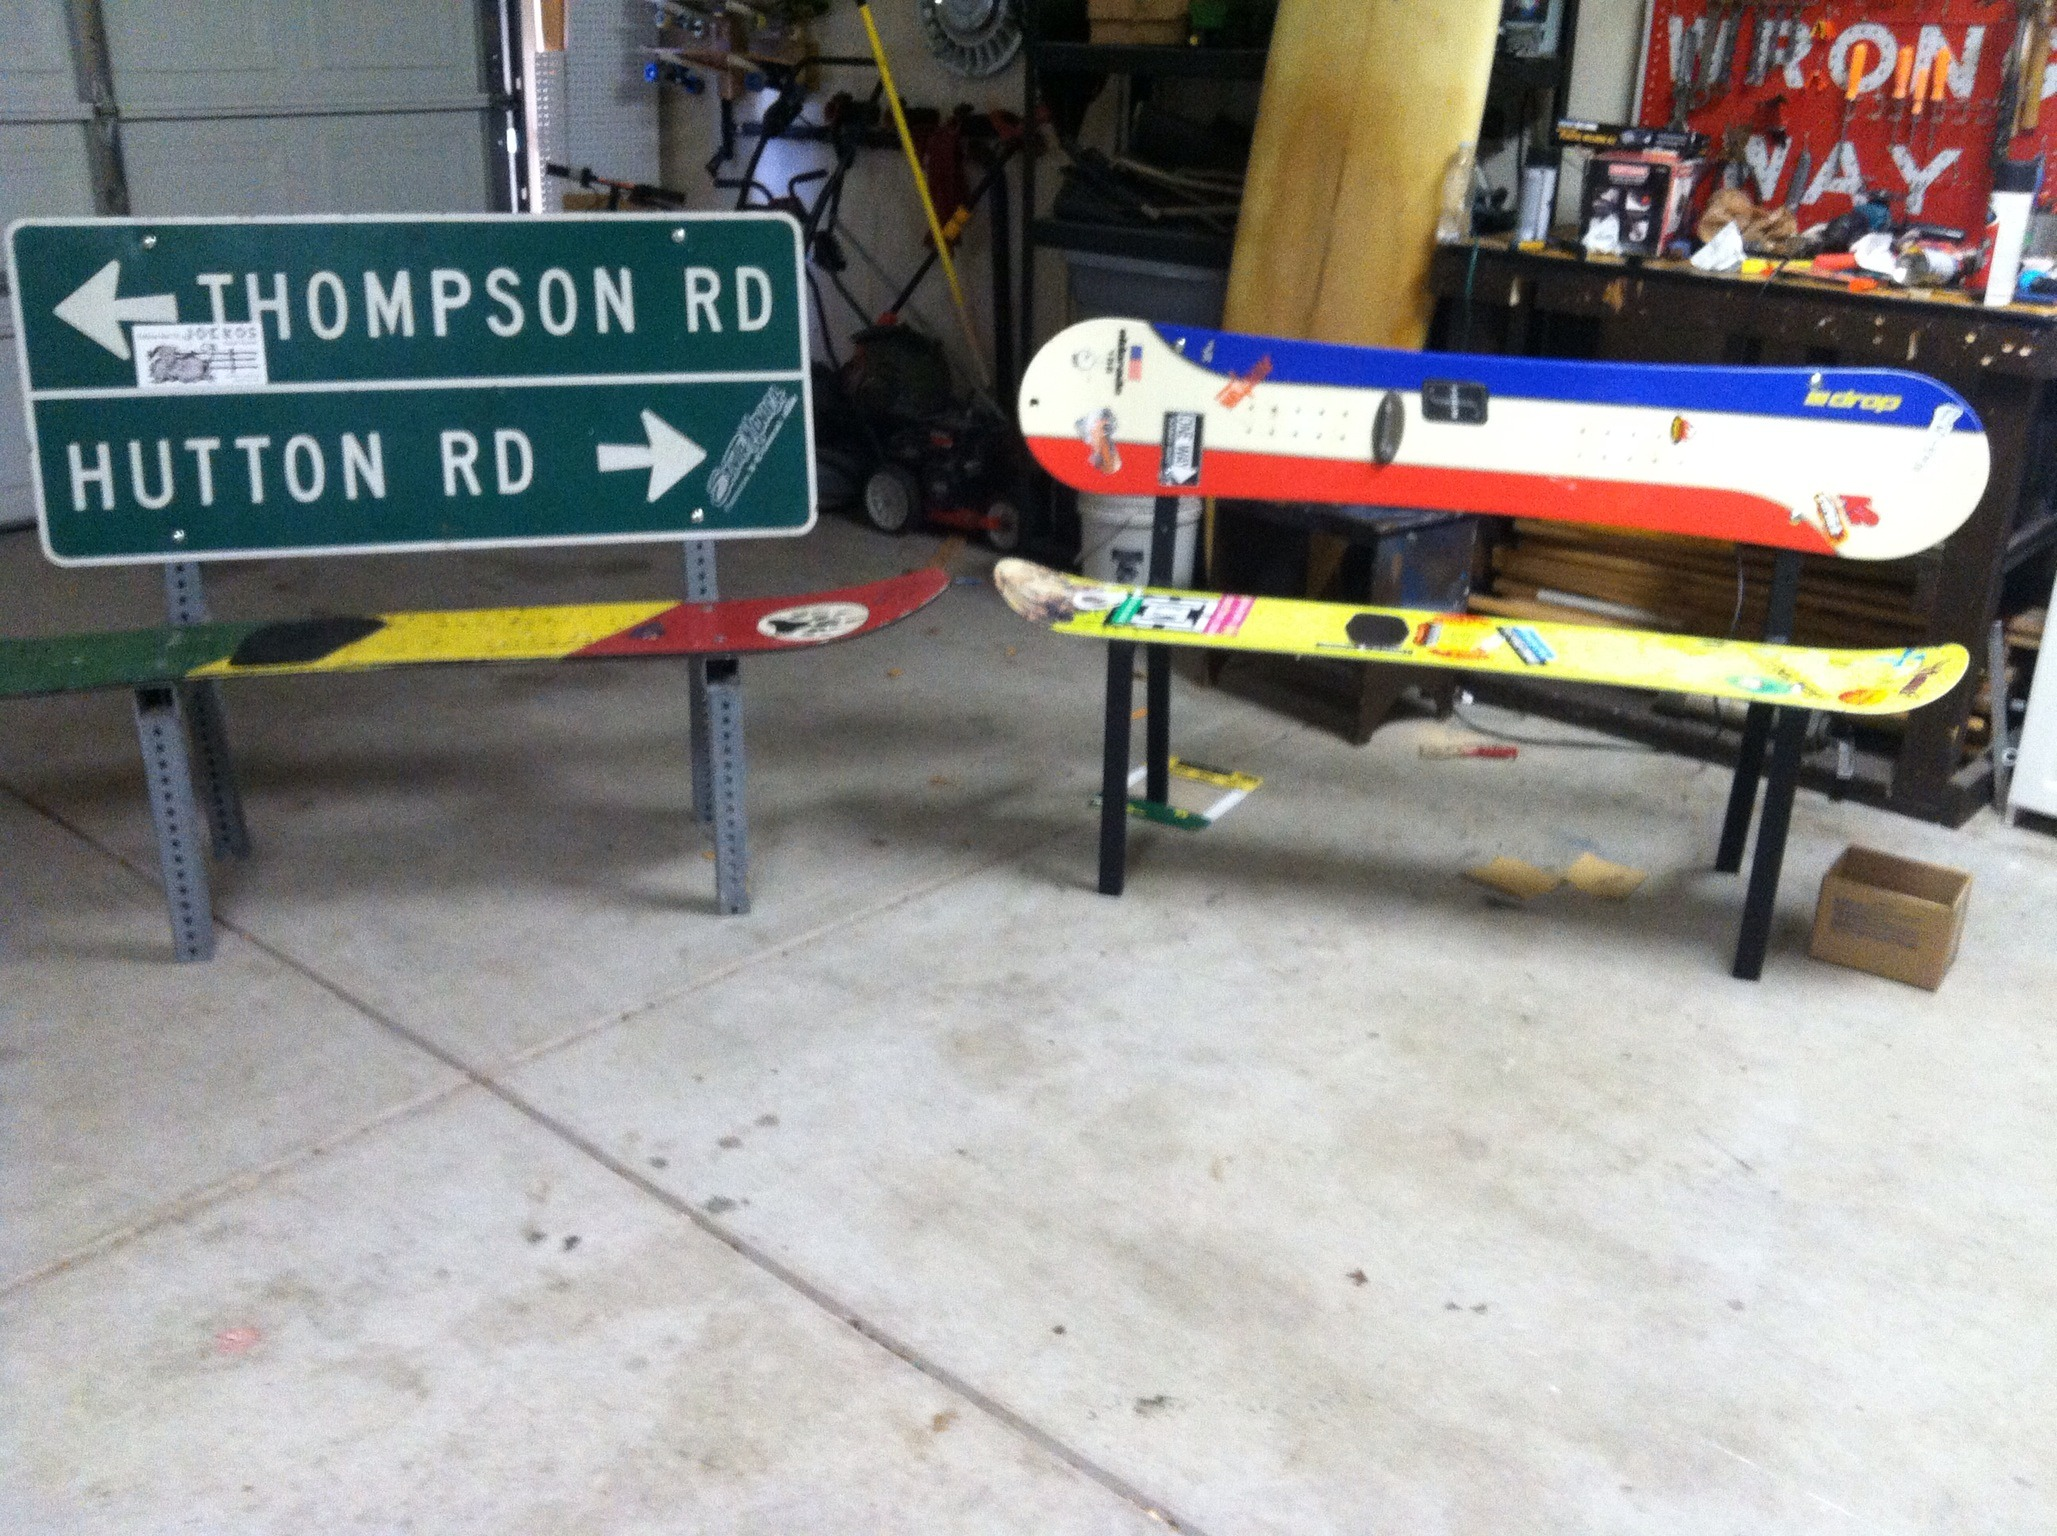 Picture of Snowboard Benches